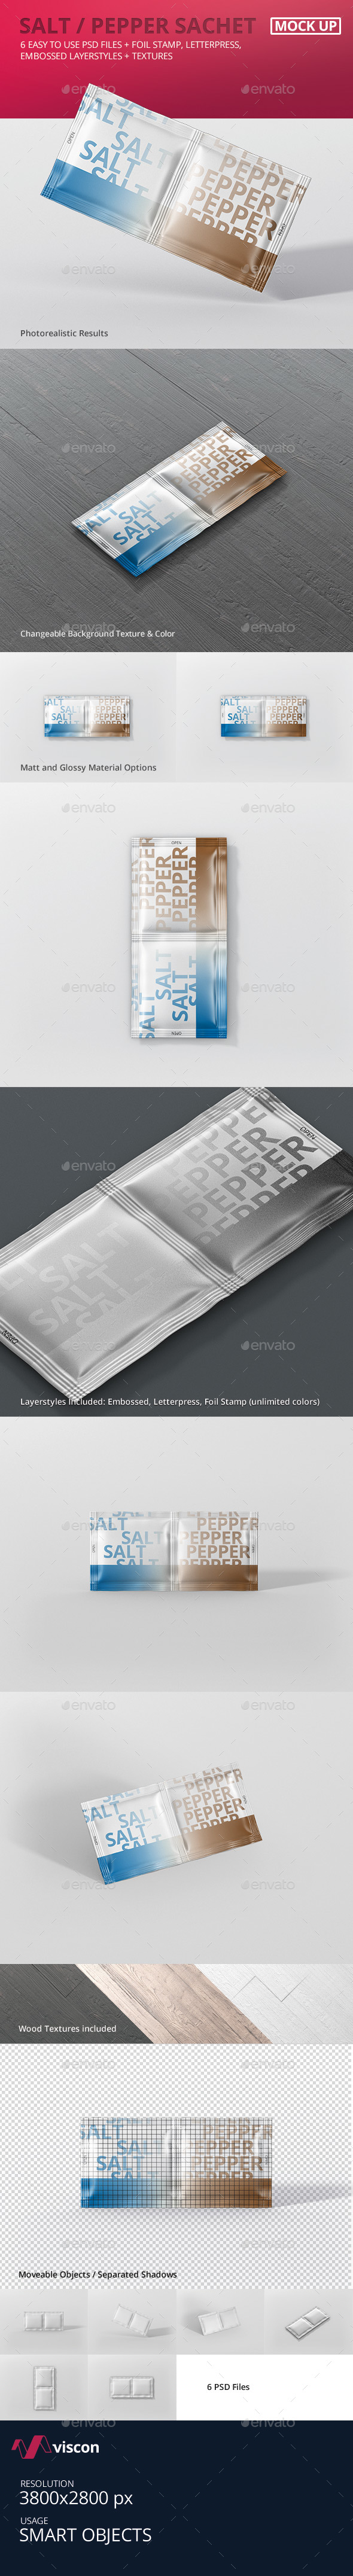 Salt / Pepper Sachet Mockup - Food and Drink Packaging